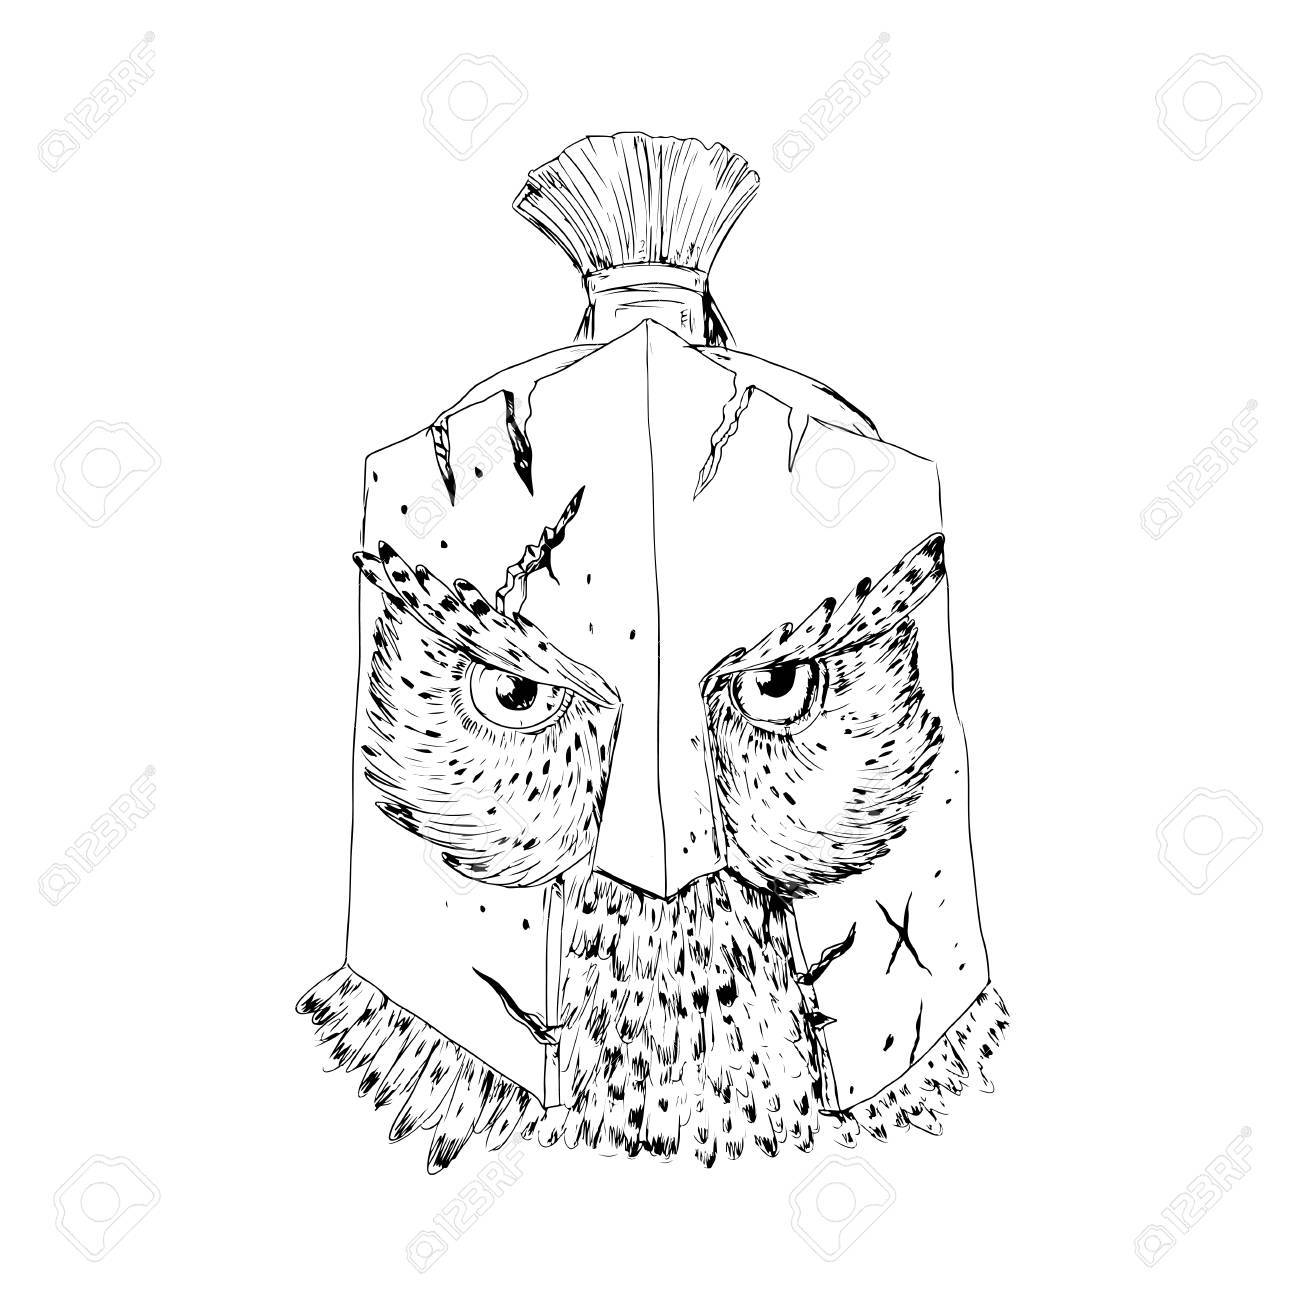 1300x1300 Drawing Sketch Style Illustration Of A Great Horned Owl Wearing